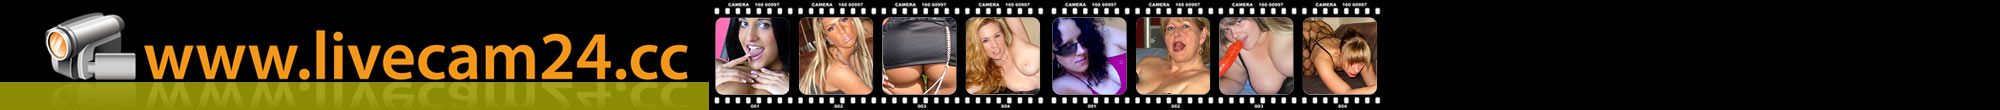 CarlaSlim, 25 Jahre, BH: 75 B - gratis sex chat -  - Video Web Cams Live Sex Chat von heissen Girls